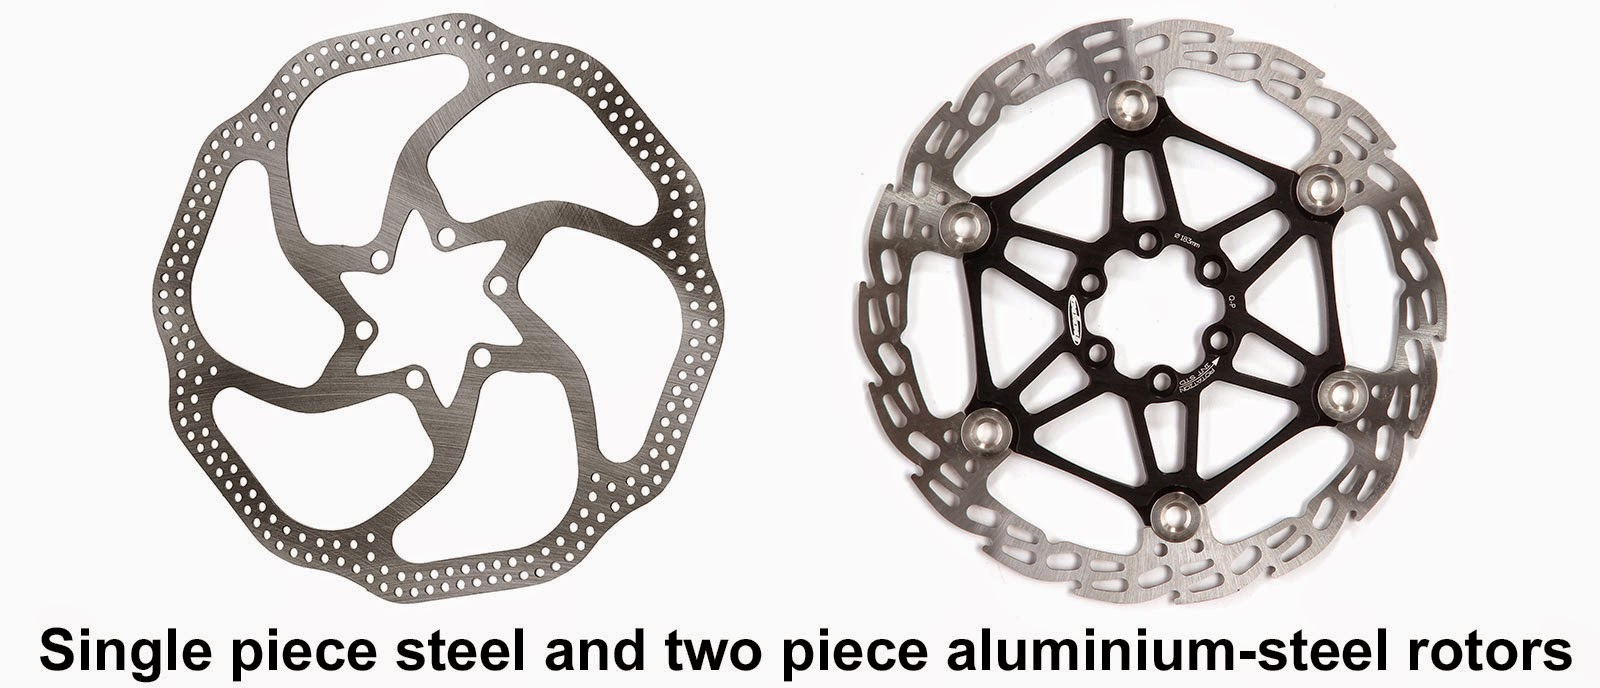 Single piece steel and two piece aluminium-steel mtb rotors